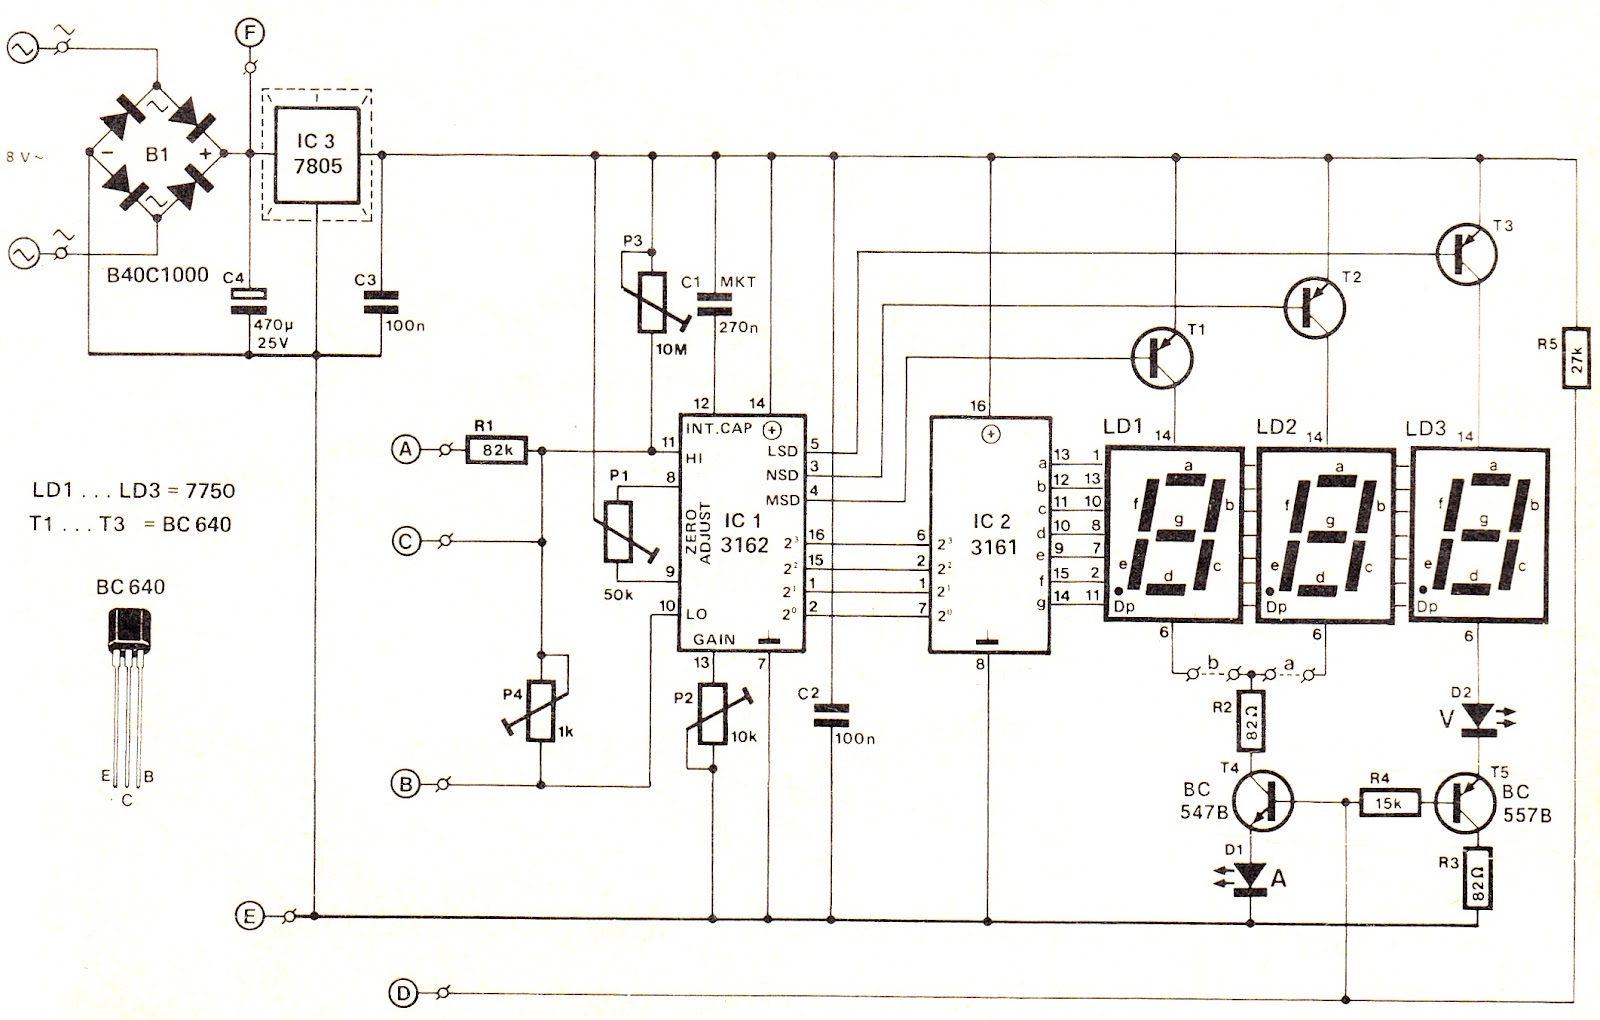 digital voltmeter and ammeter circuit module under repository-circuits